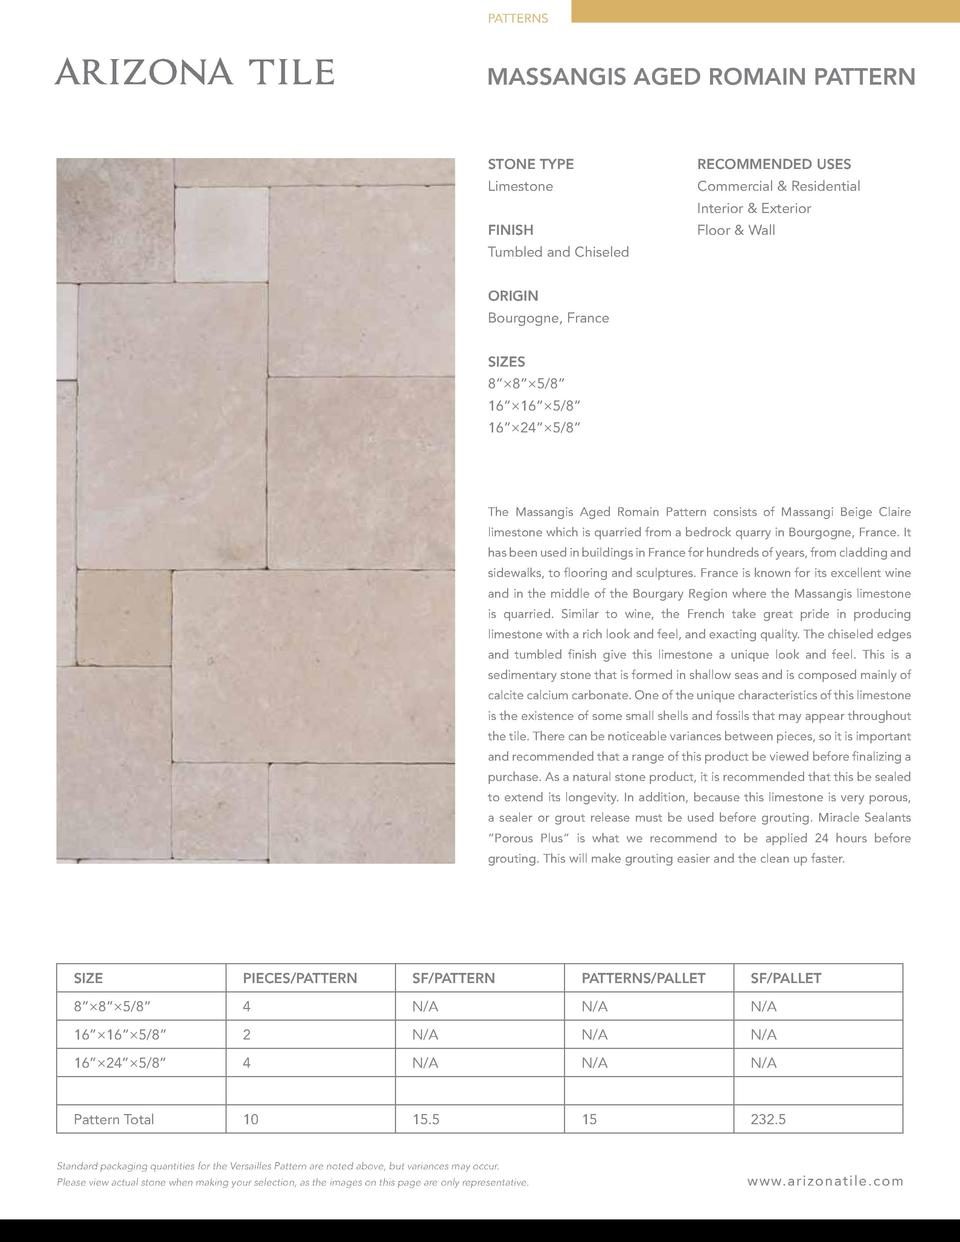 PATTERNS  MASSANGIS AGED ROMAIN PATTERN  STONE TYPE  RECOMMENDED USES  Limestone  Commercial   Residential Interior   Exte...